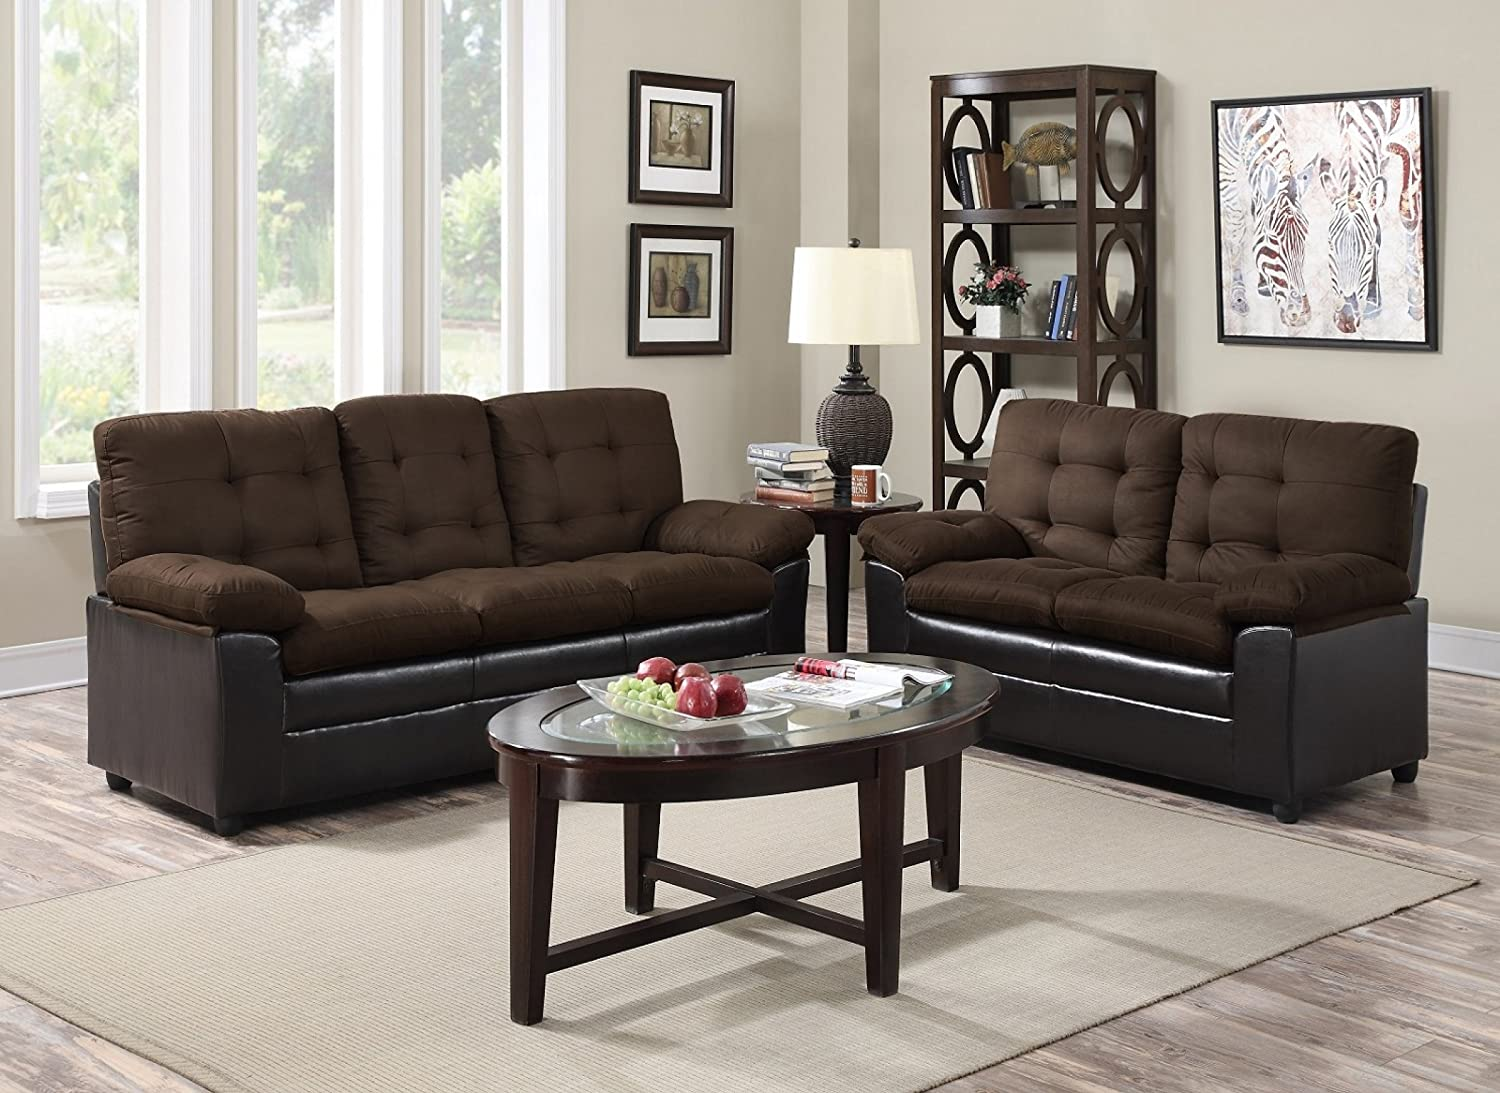 Amazon.com: GTU Furniture 2 Tone Microfiber Sofa U0026 Loveseat Set, 5 Colors  Available (Chocolate): Kitchen U0026 Dining